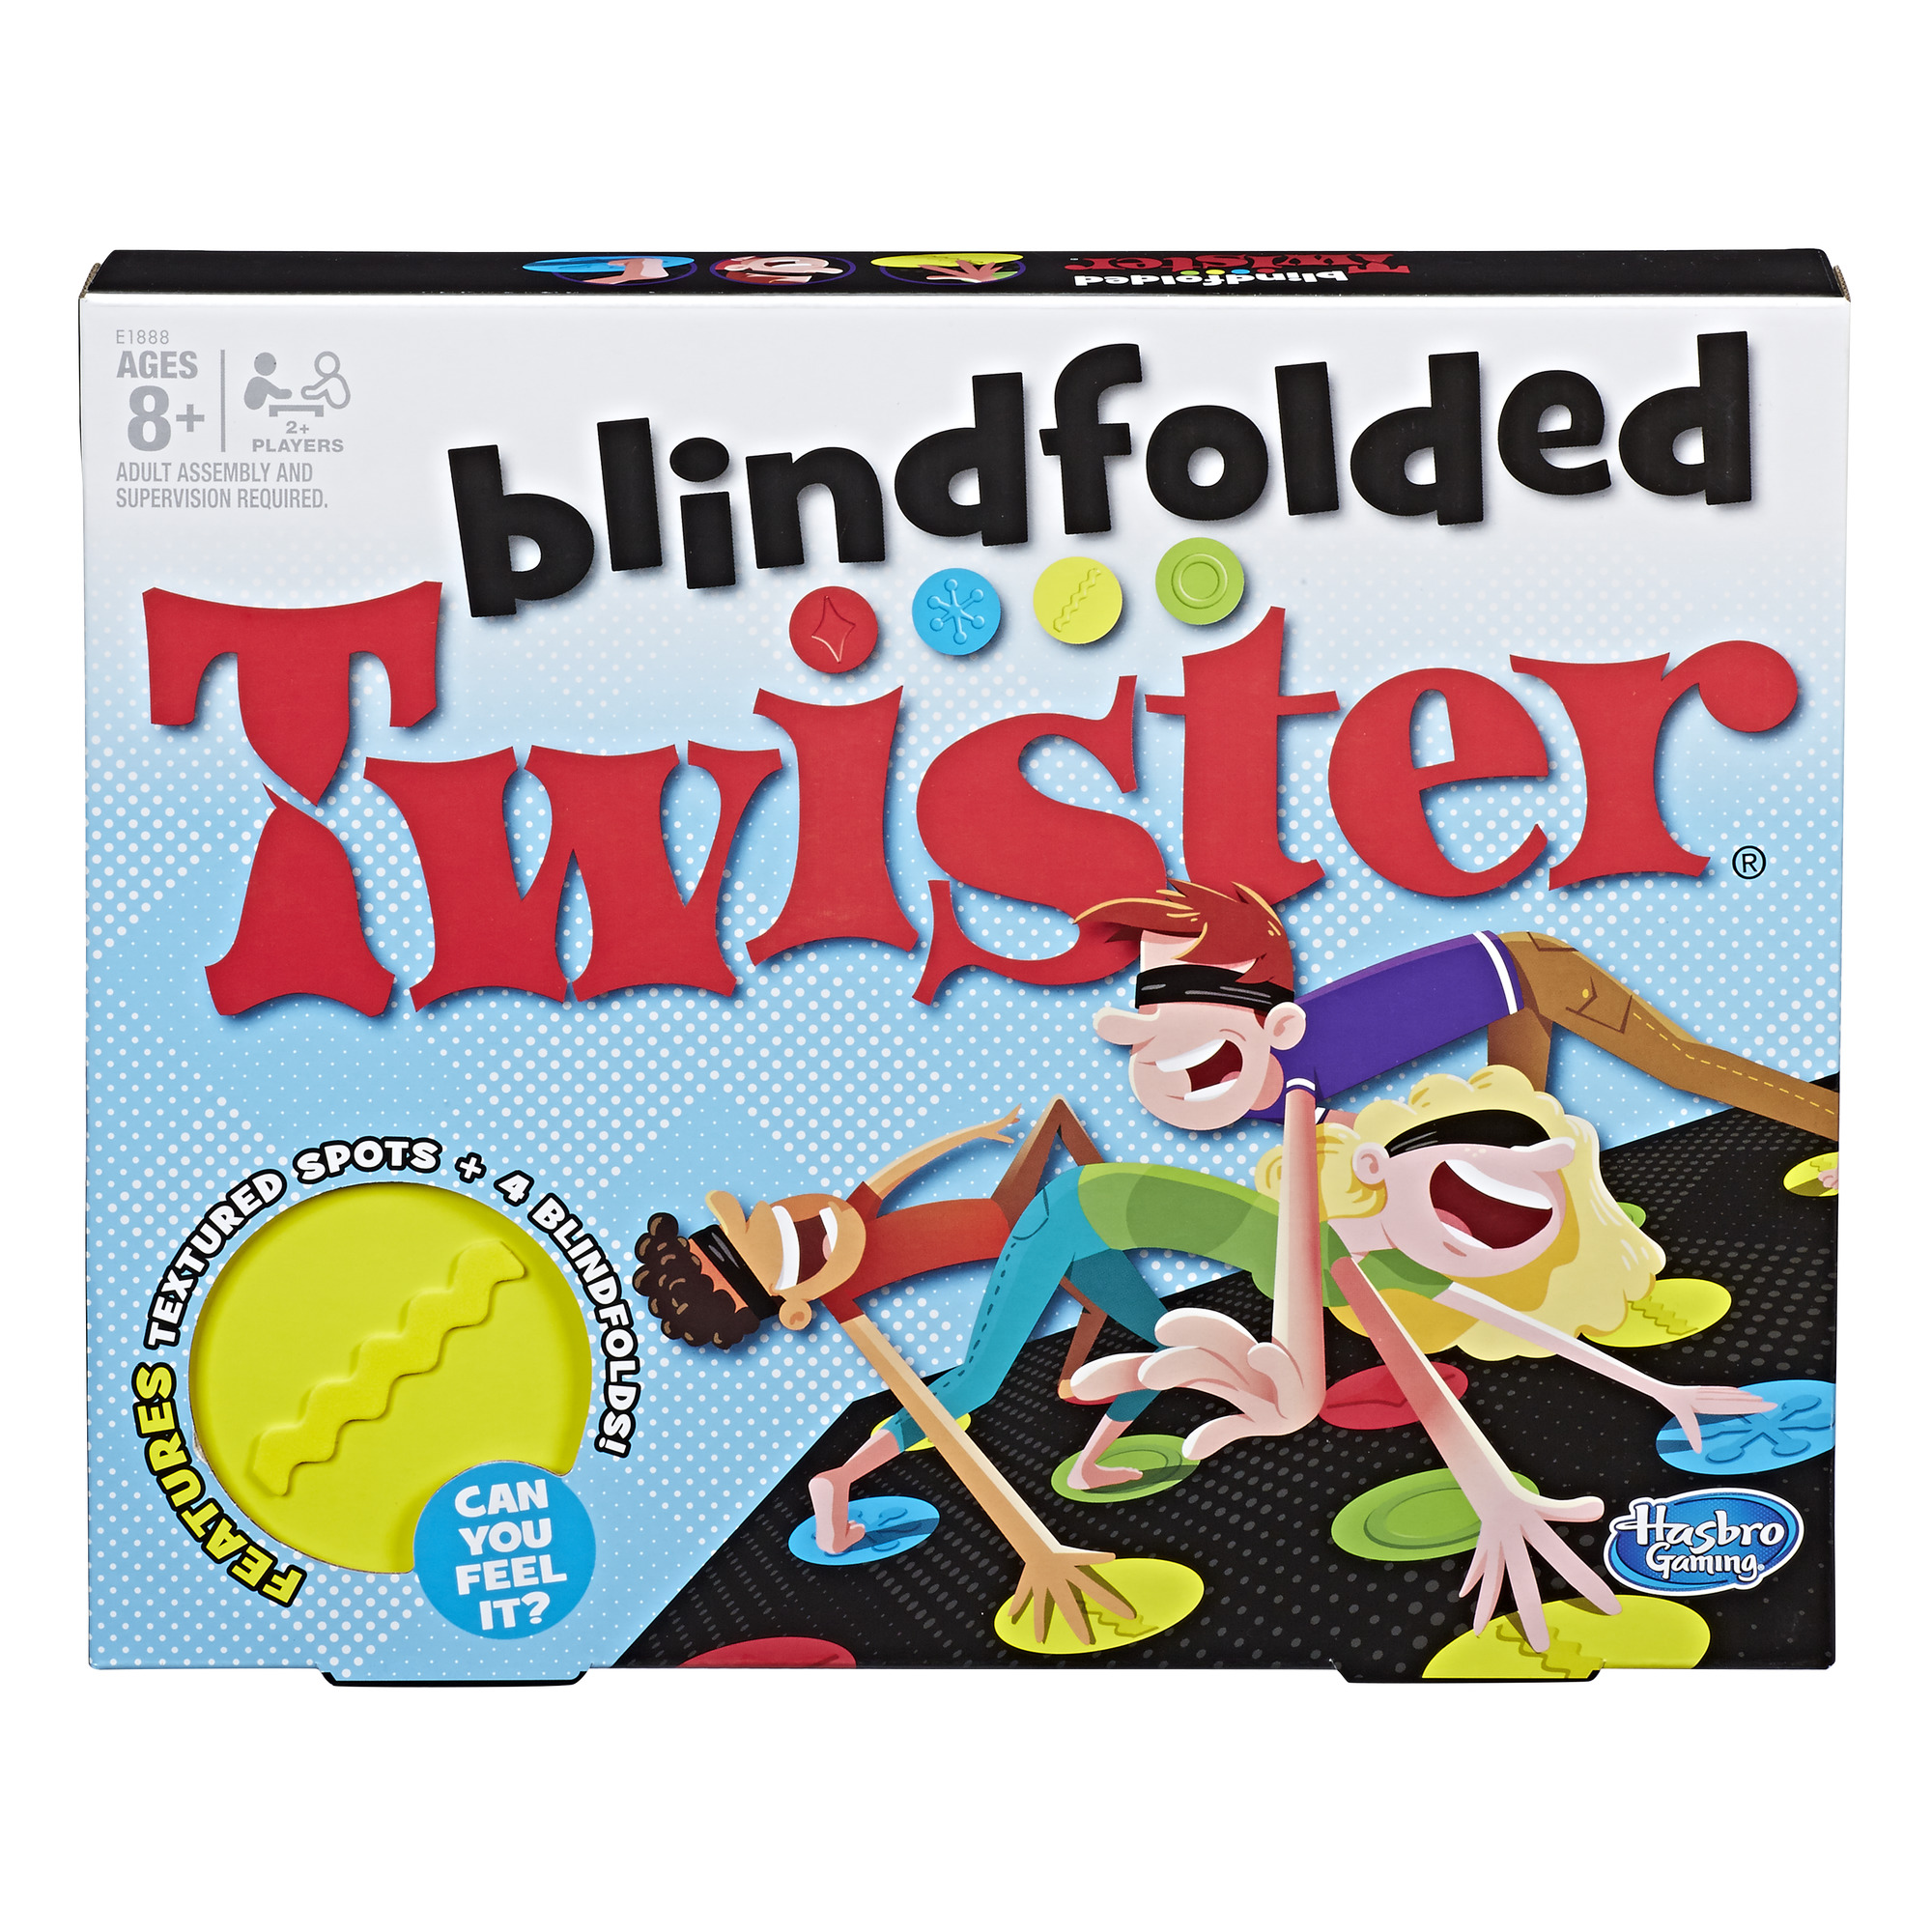 Blindfolded Twister Game, Games for kids Ages 8 and up